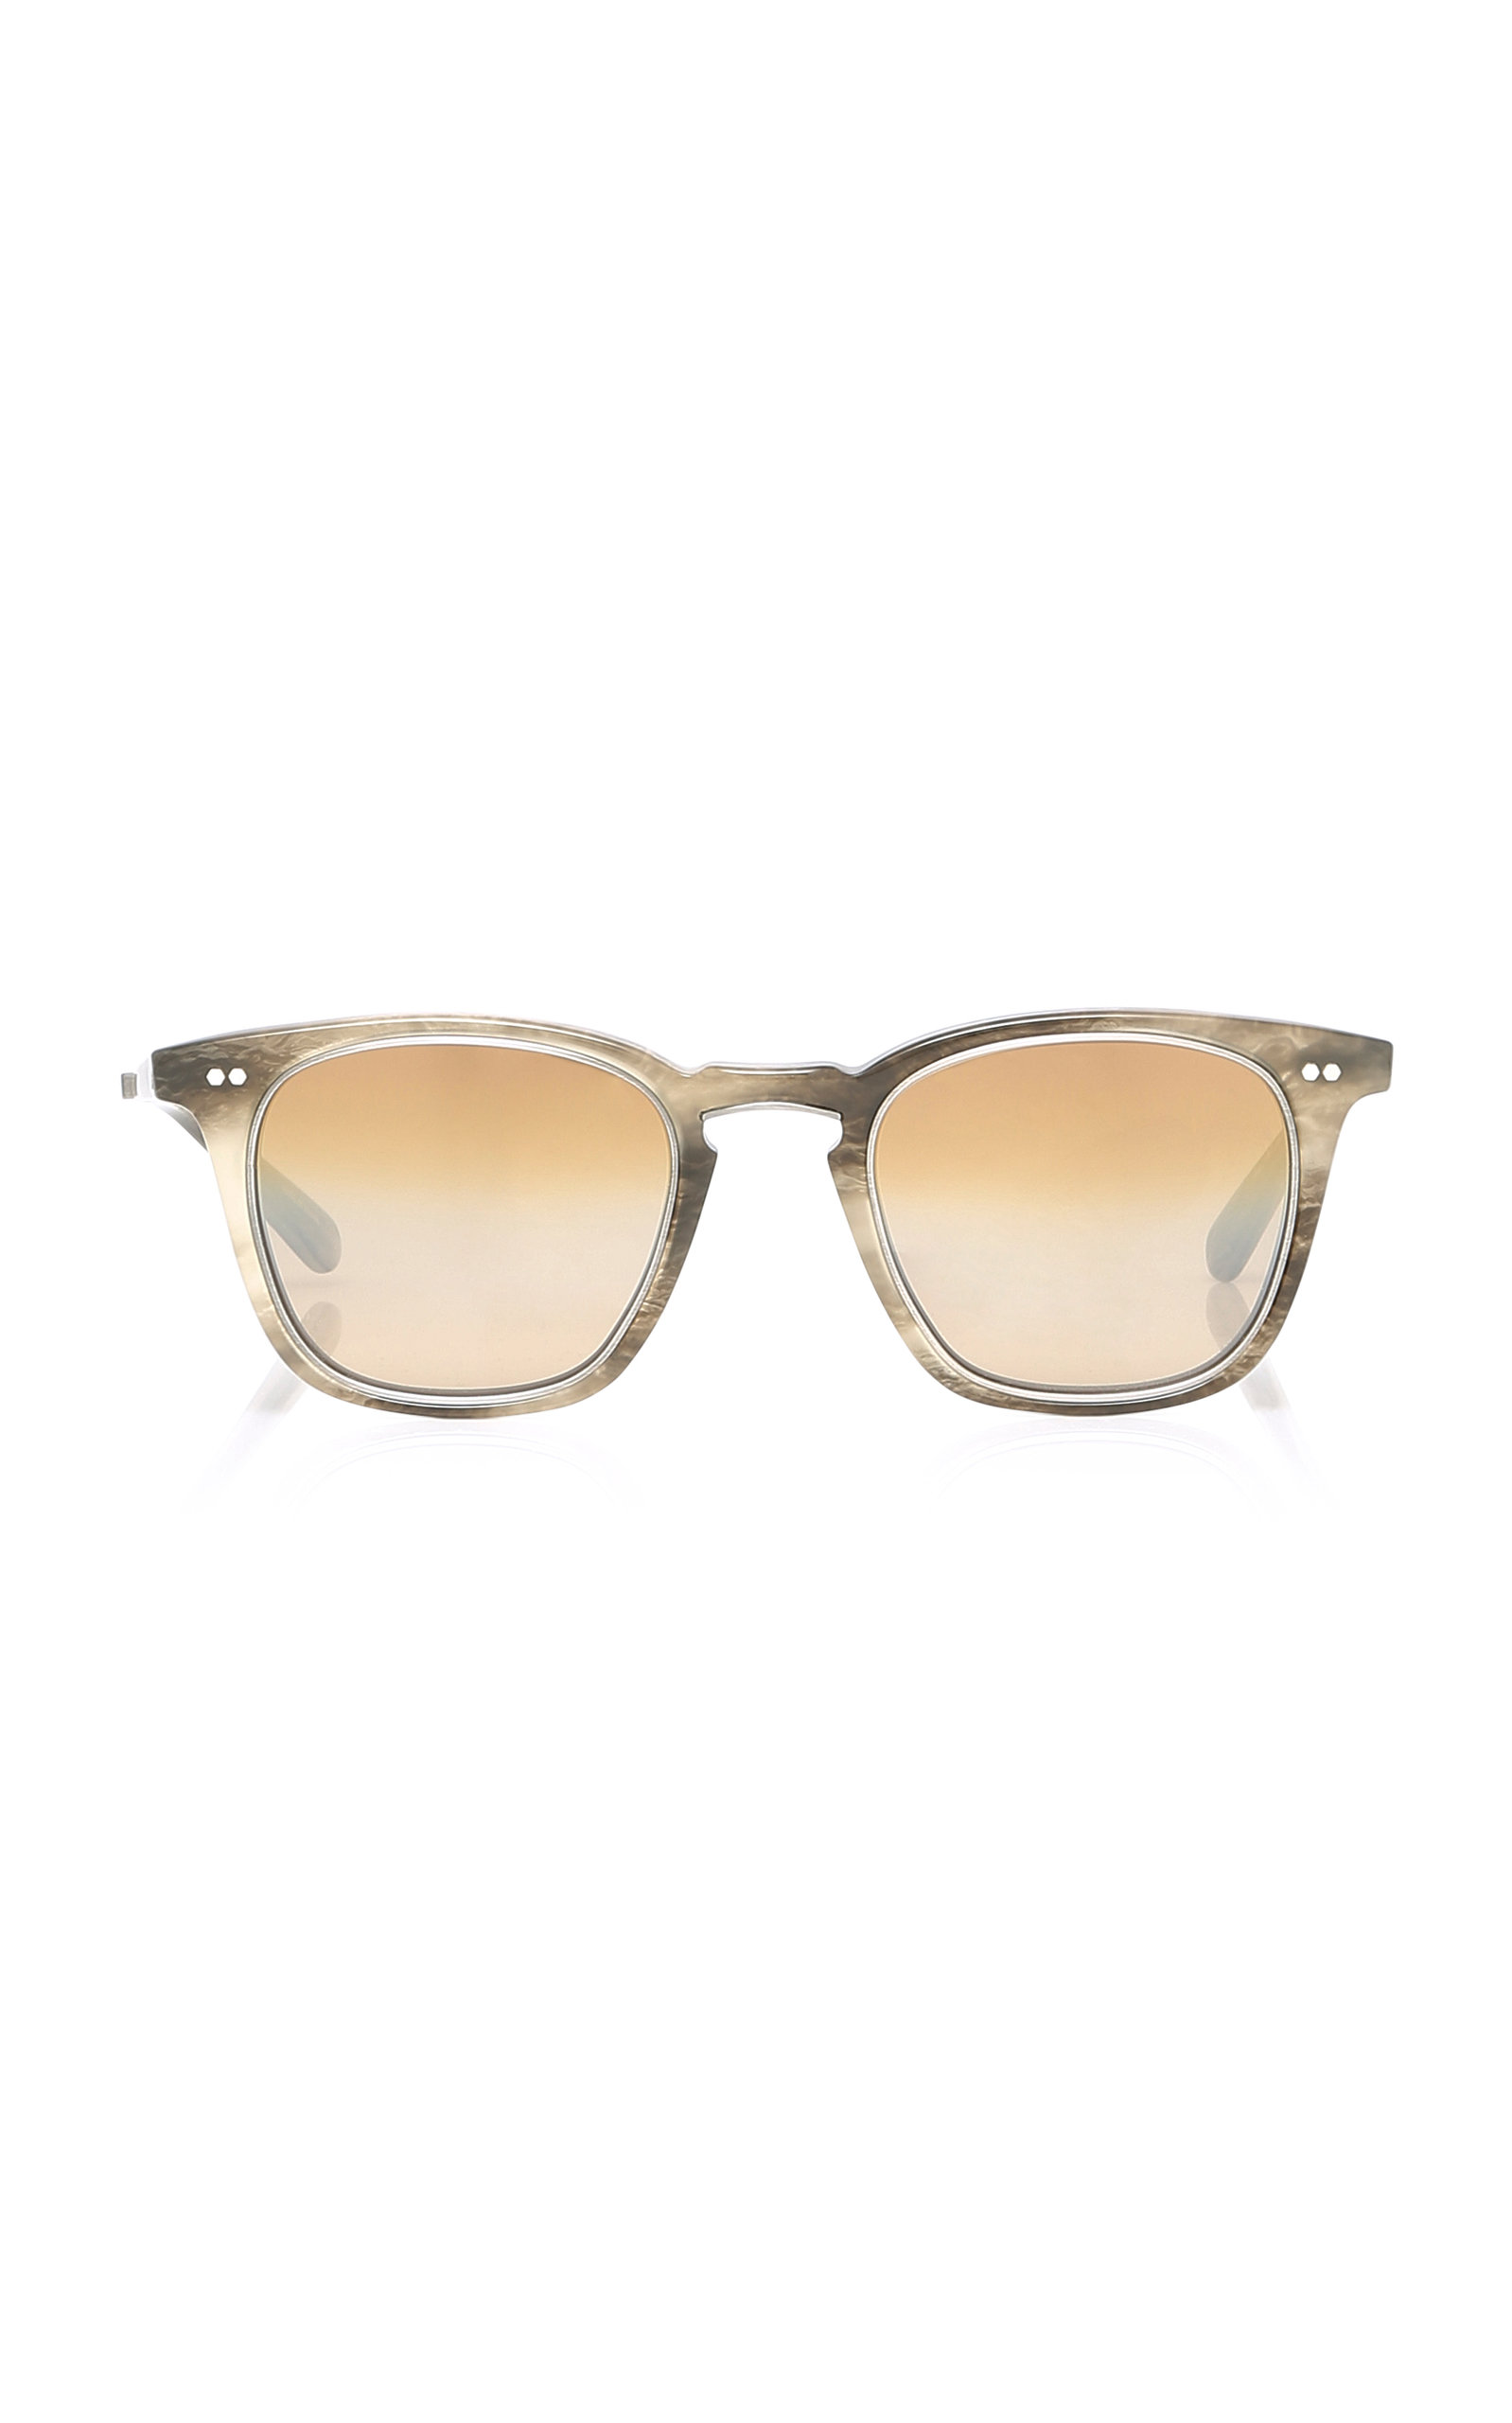 MR. LEIGHT Getty Square-Frame Sunglasses in Grey